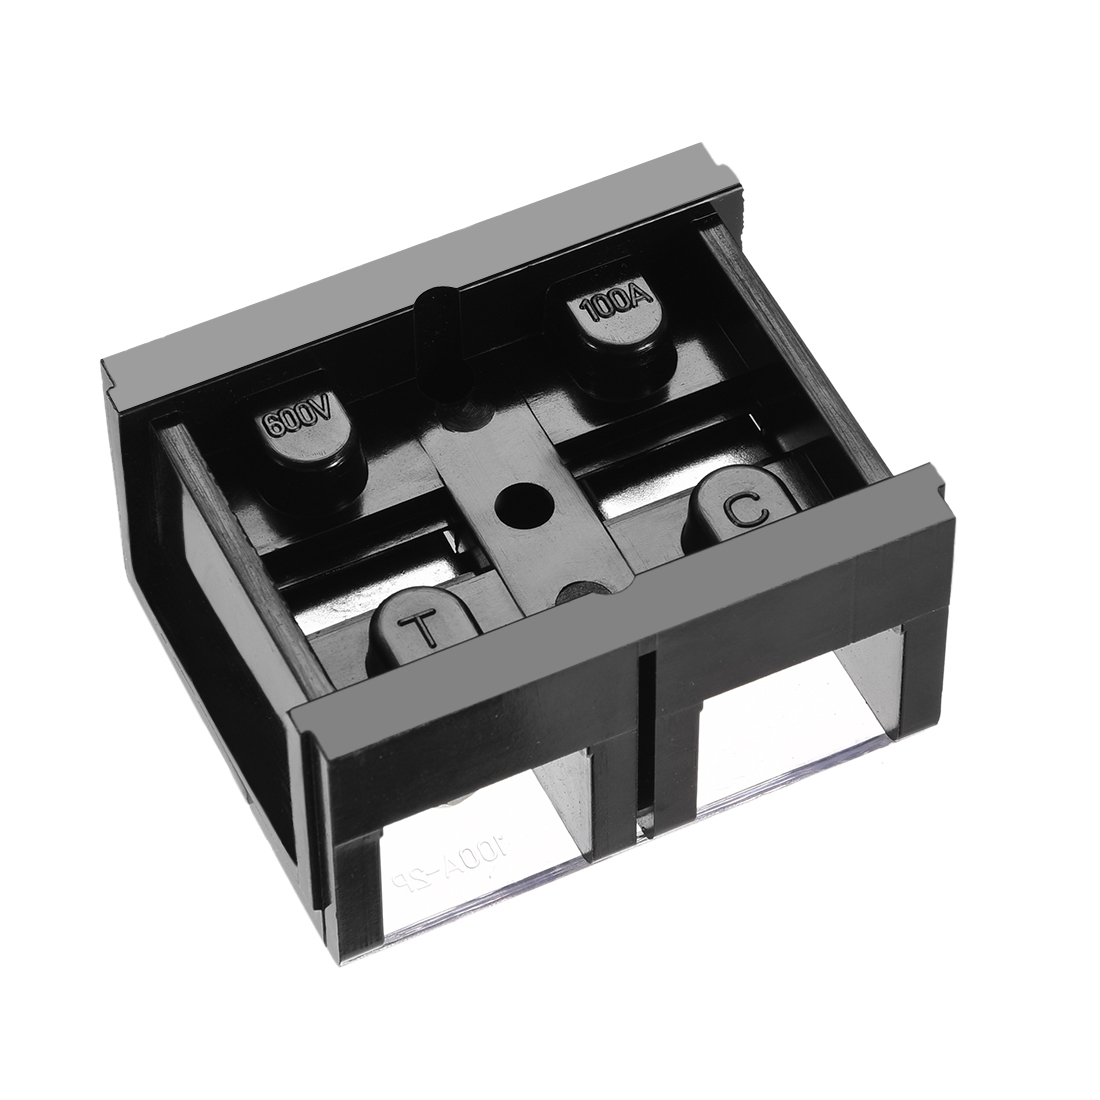 Barrier Terminal Block 600V 100A 2 Positions Dual Rows Screw Terminals 5 Pcs - image 1 of 3